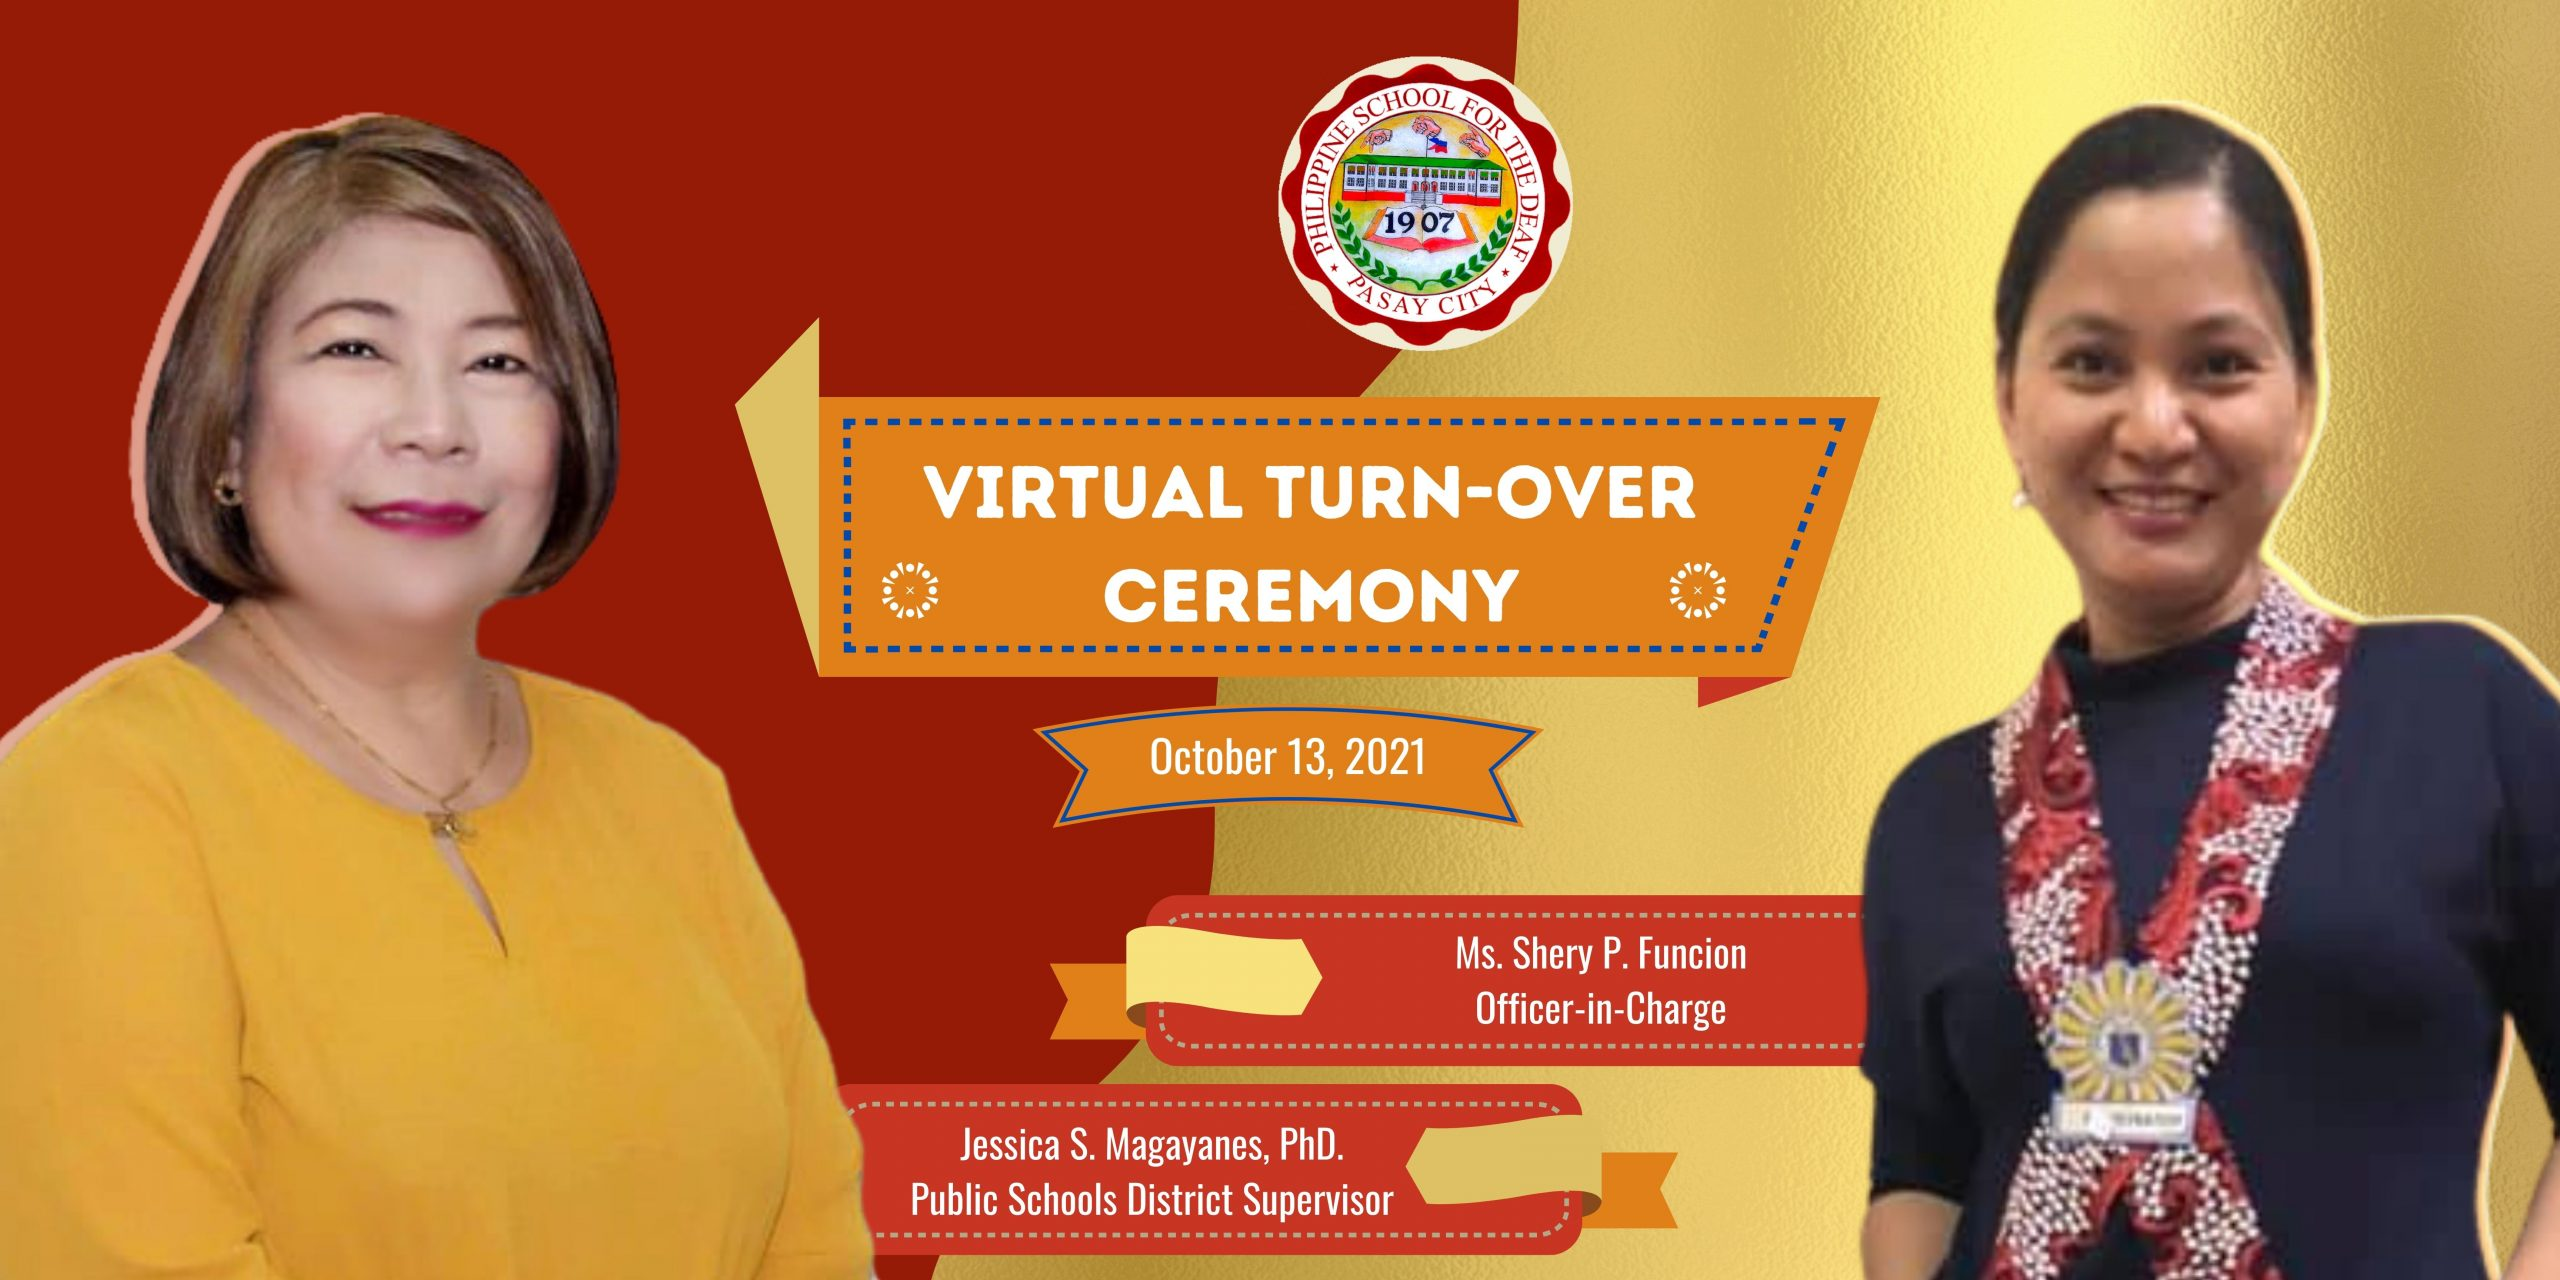 Virtual Turn-Over Ceremony